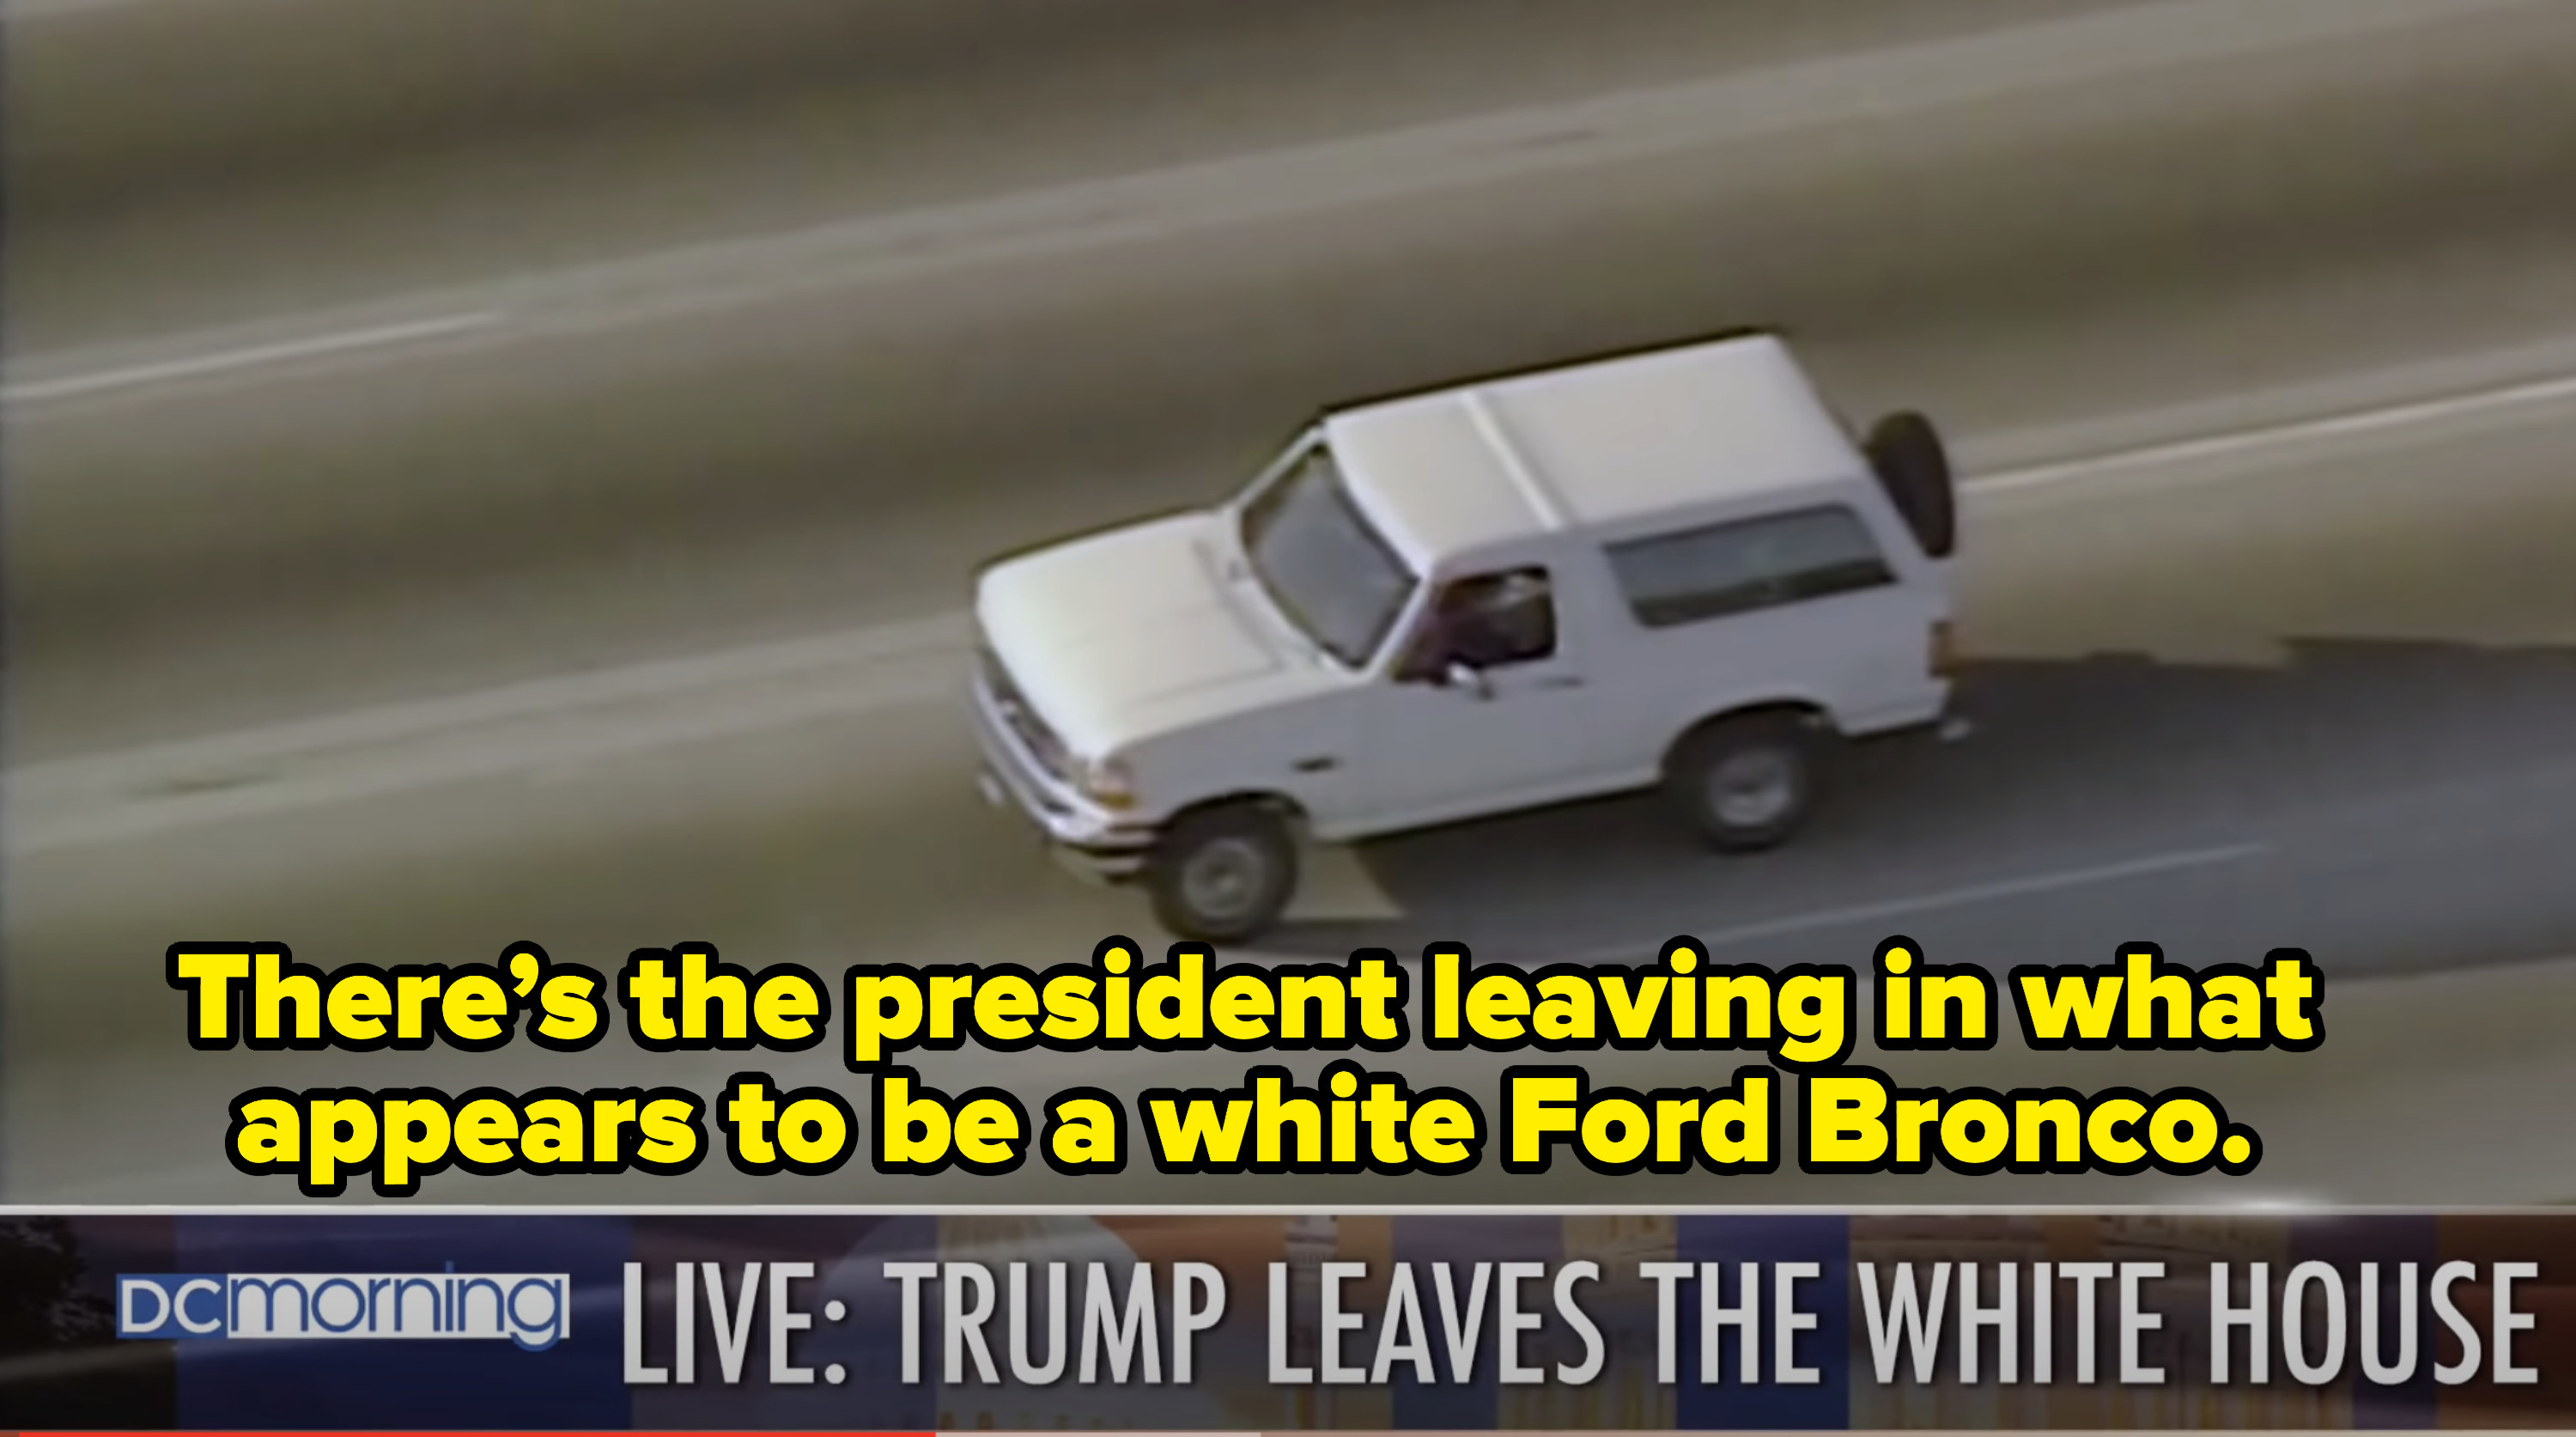 """The newscaster saying """"there's the president leaving in what appears to be a white ford Bronco."""